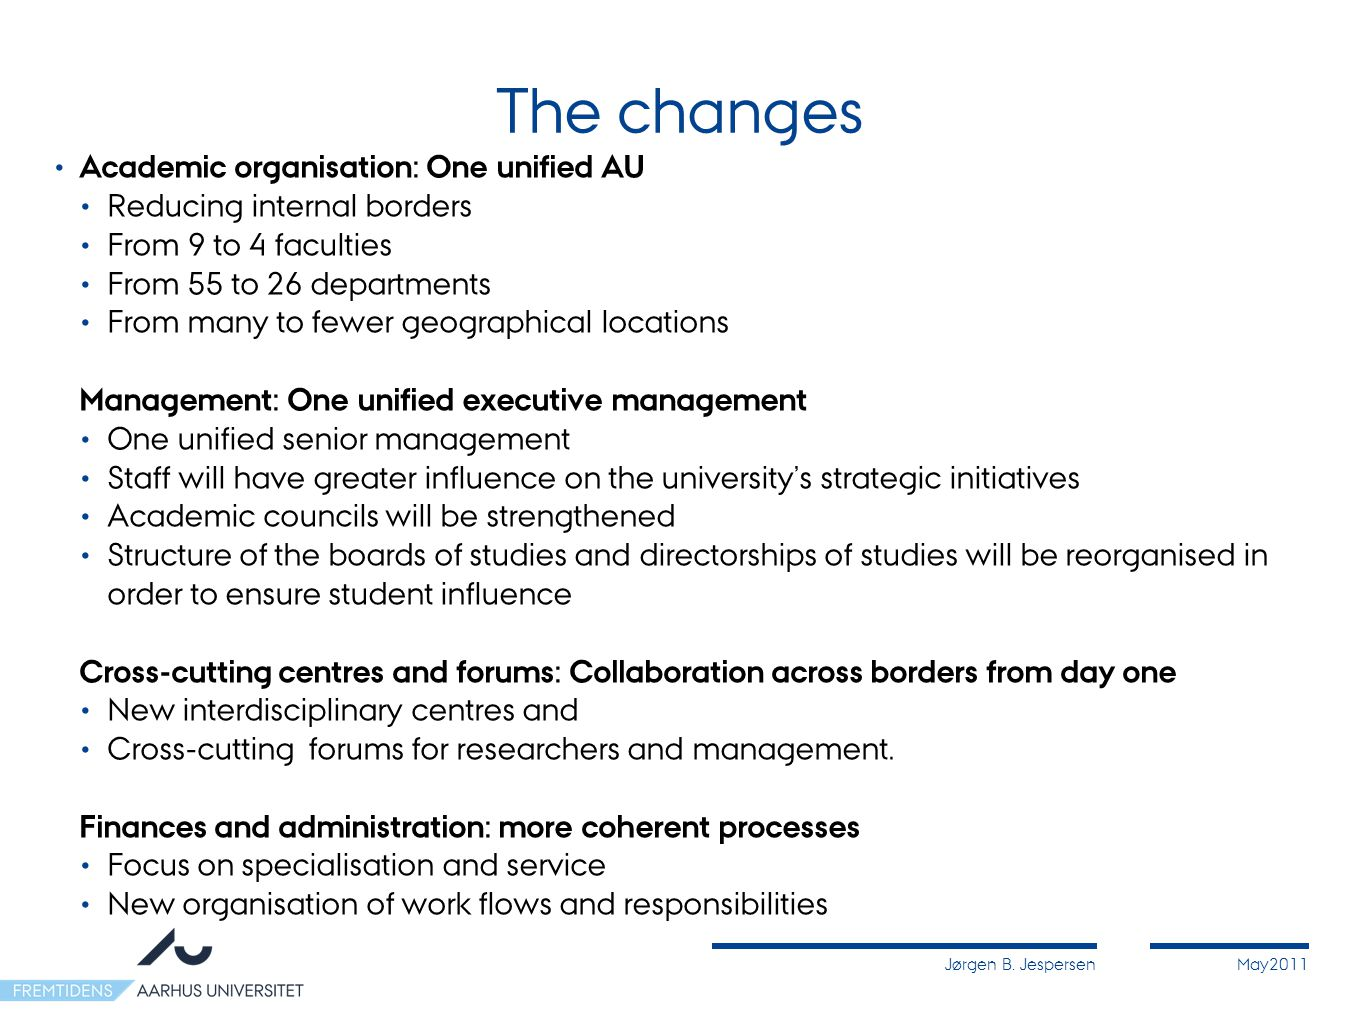 Jørgen B. JespersenMay2011 The changes Academic organisation: One unified AU Reducing internal borders From 9 to 4 faculties From 55 to 26 departments